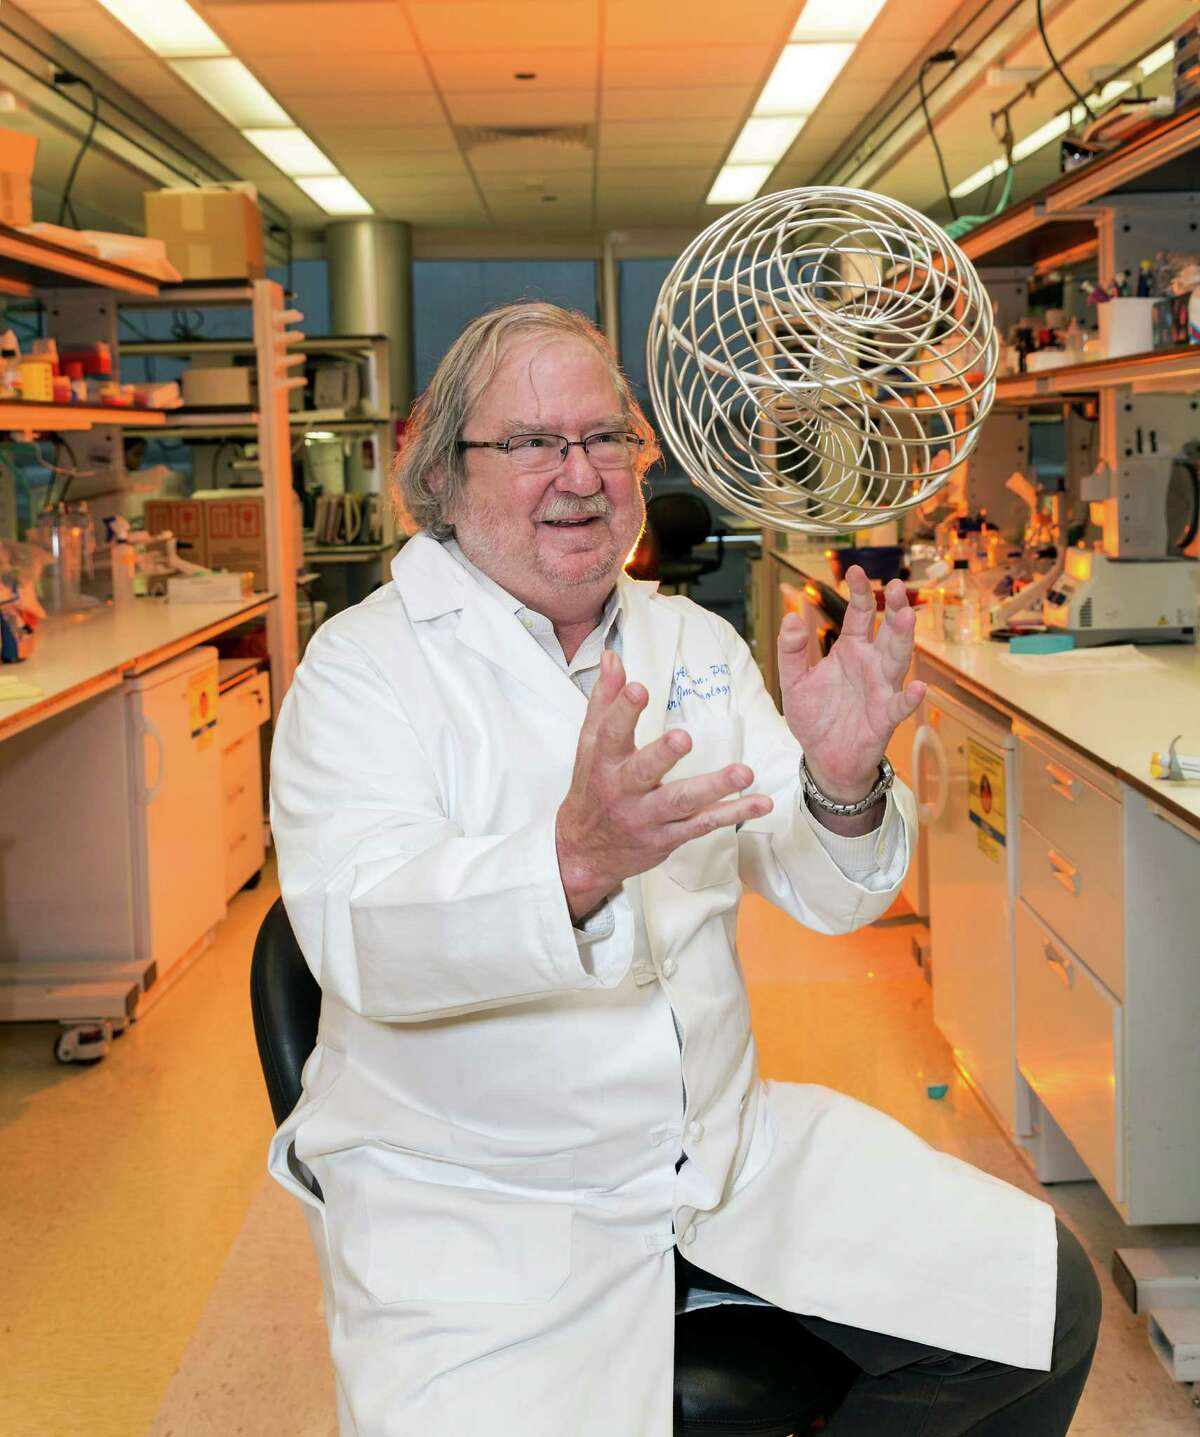 """Jim Allison, Ph.D., an M.D. Anderson researcher whose ground breaking research enabled doctors to enlist the immune system to fight cancer. For Sunday story on the new approach. With important """"Breakthrough Prize in Life Sciences"""" in his lab at the McCombs Institute for the Early Detection and Treatment of Cancer, 7555 Fannin Street. 1/24/14 (Craig H. Hartley/For the Chronicle)"""